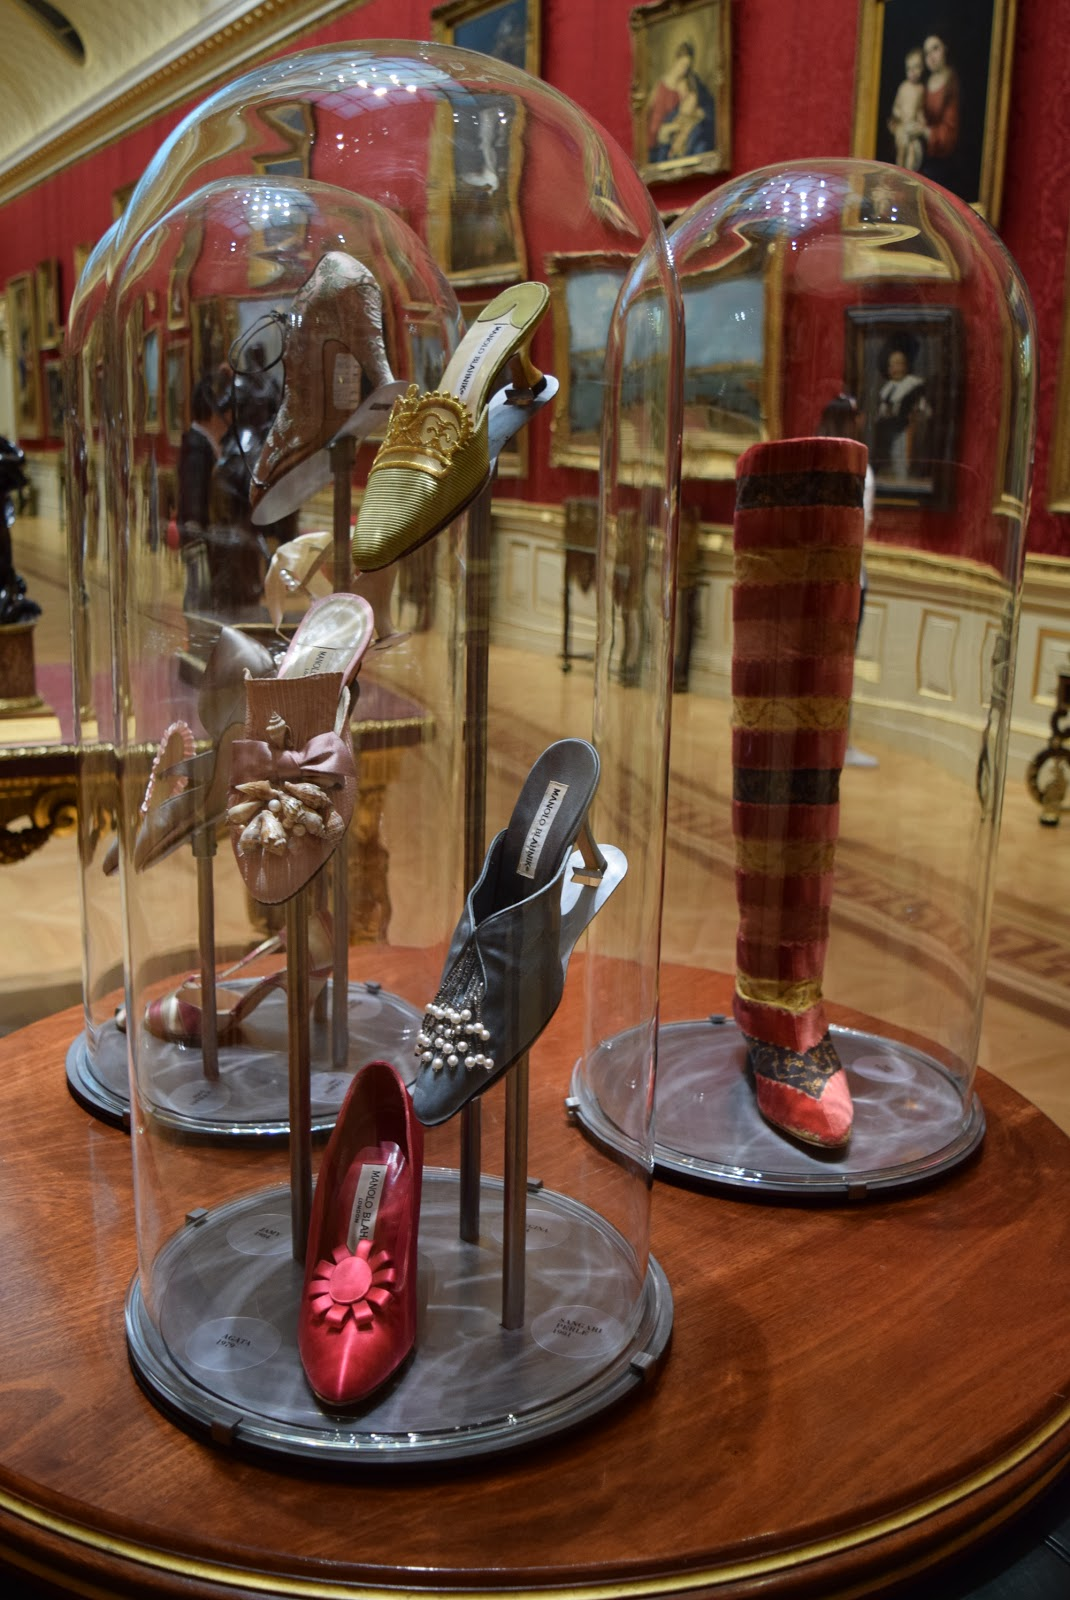 manolo blahnik luxury shoes on display